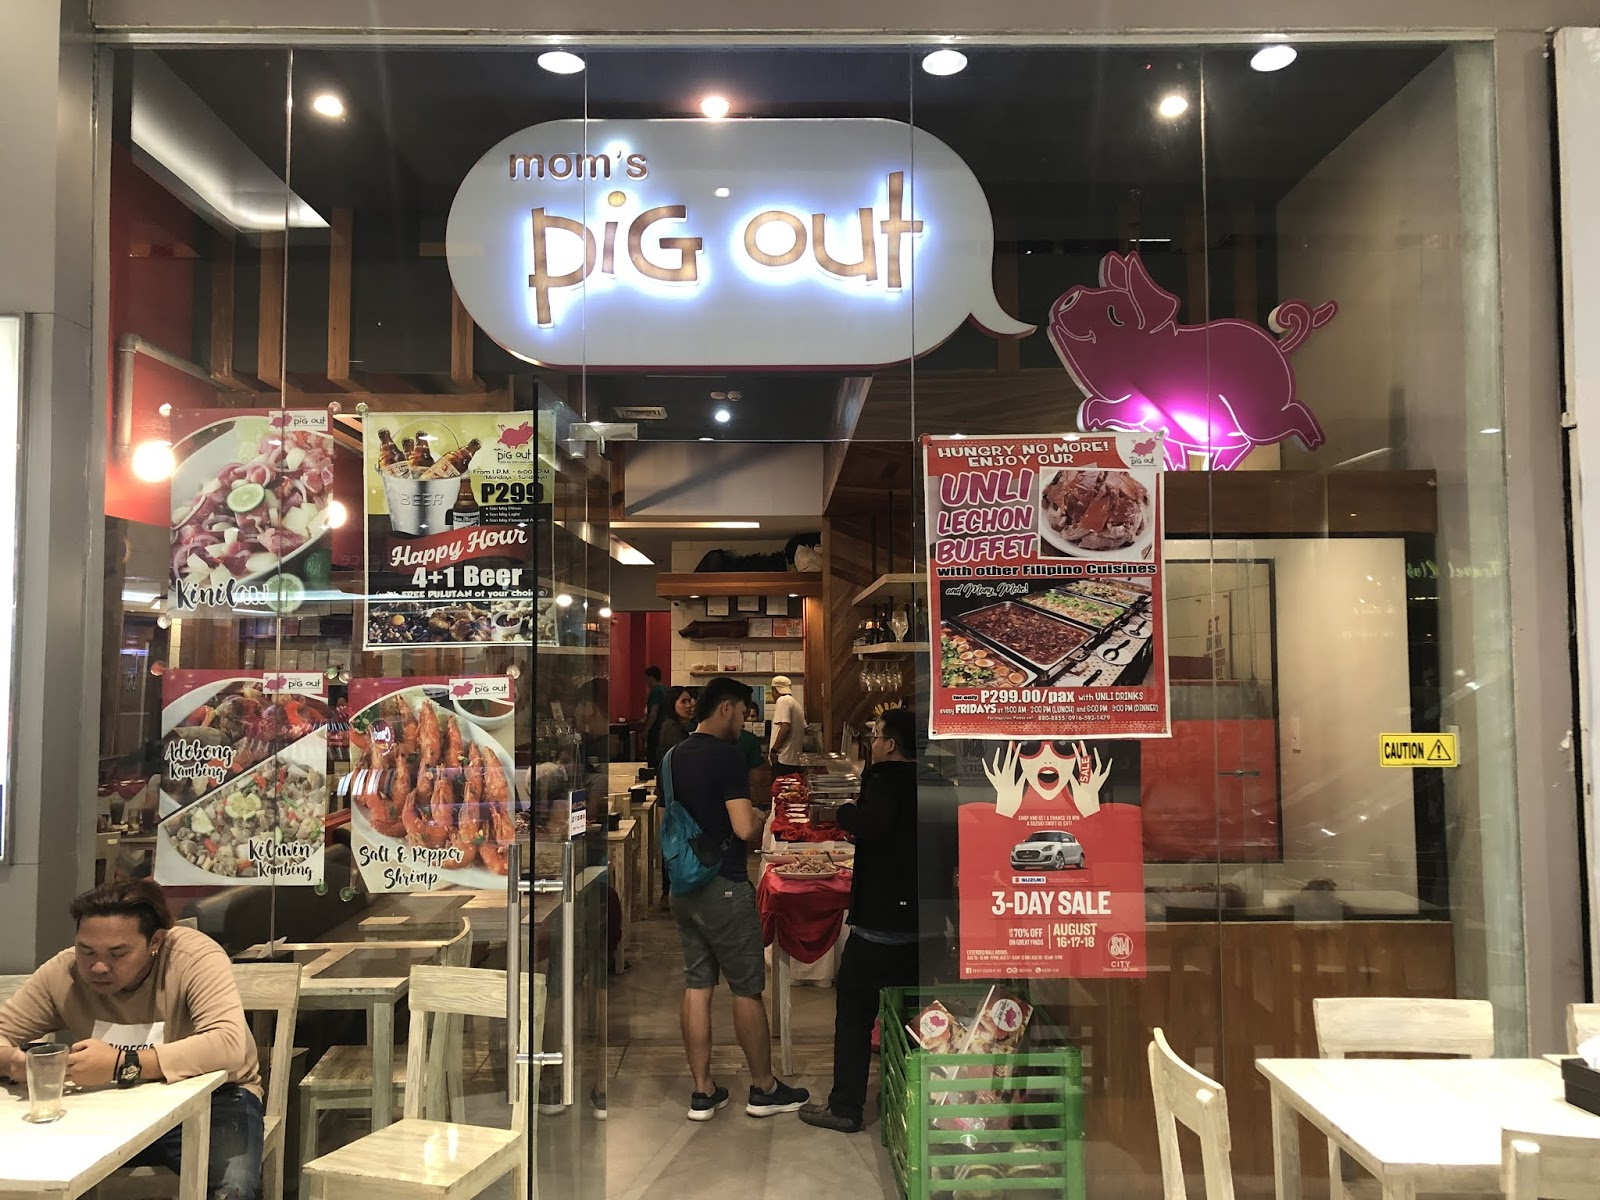 Keep Calm and Pig Out! with Mom's Pig Out's Unli Lechon Buffet